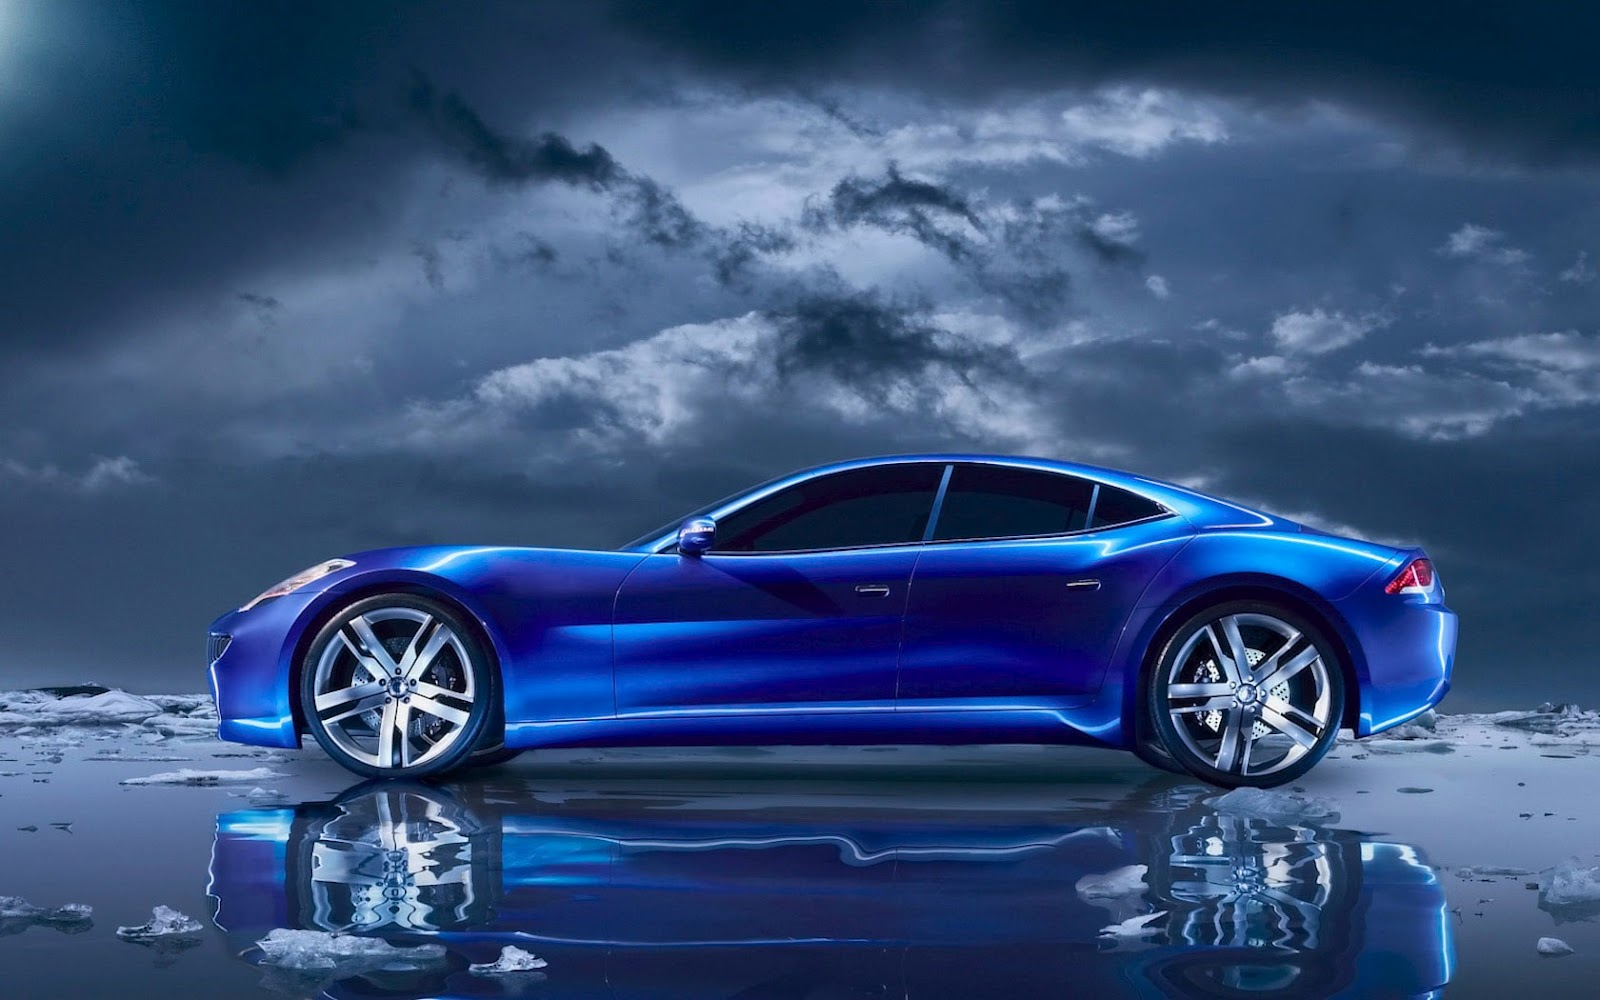 cars amazing wallpapers sports background sport er fisker karma luxury automotive super wallpap vehicle